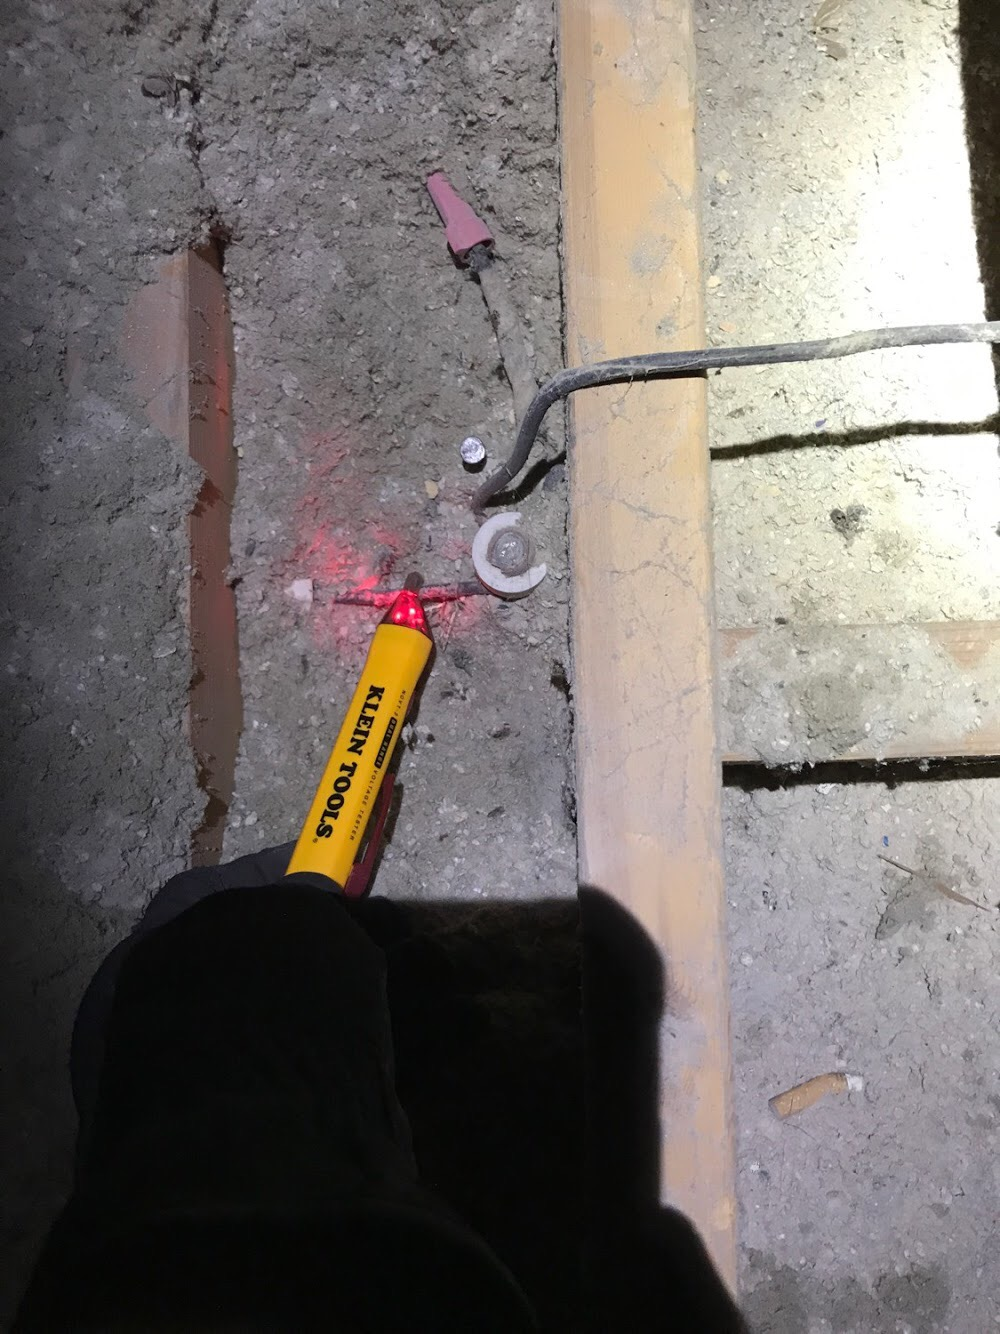 live knob and tube wiring in old boise home attic